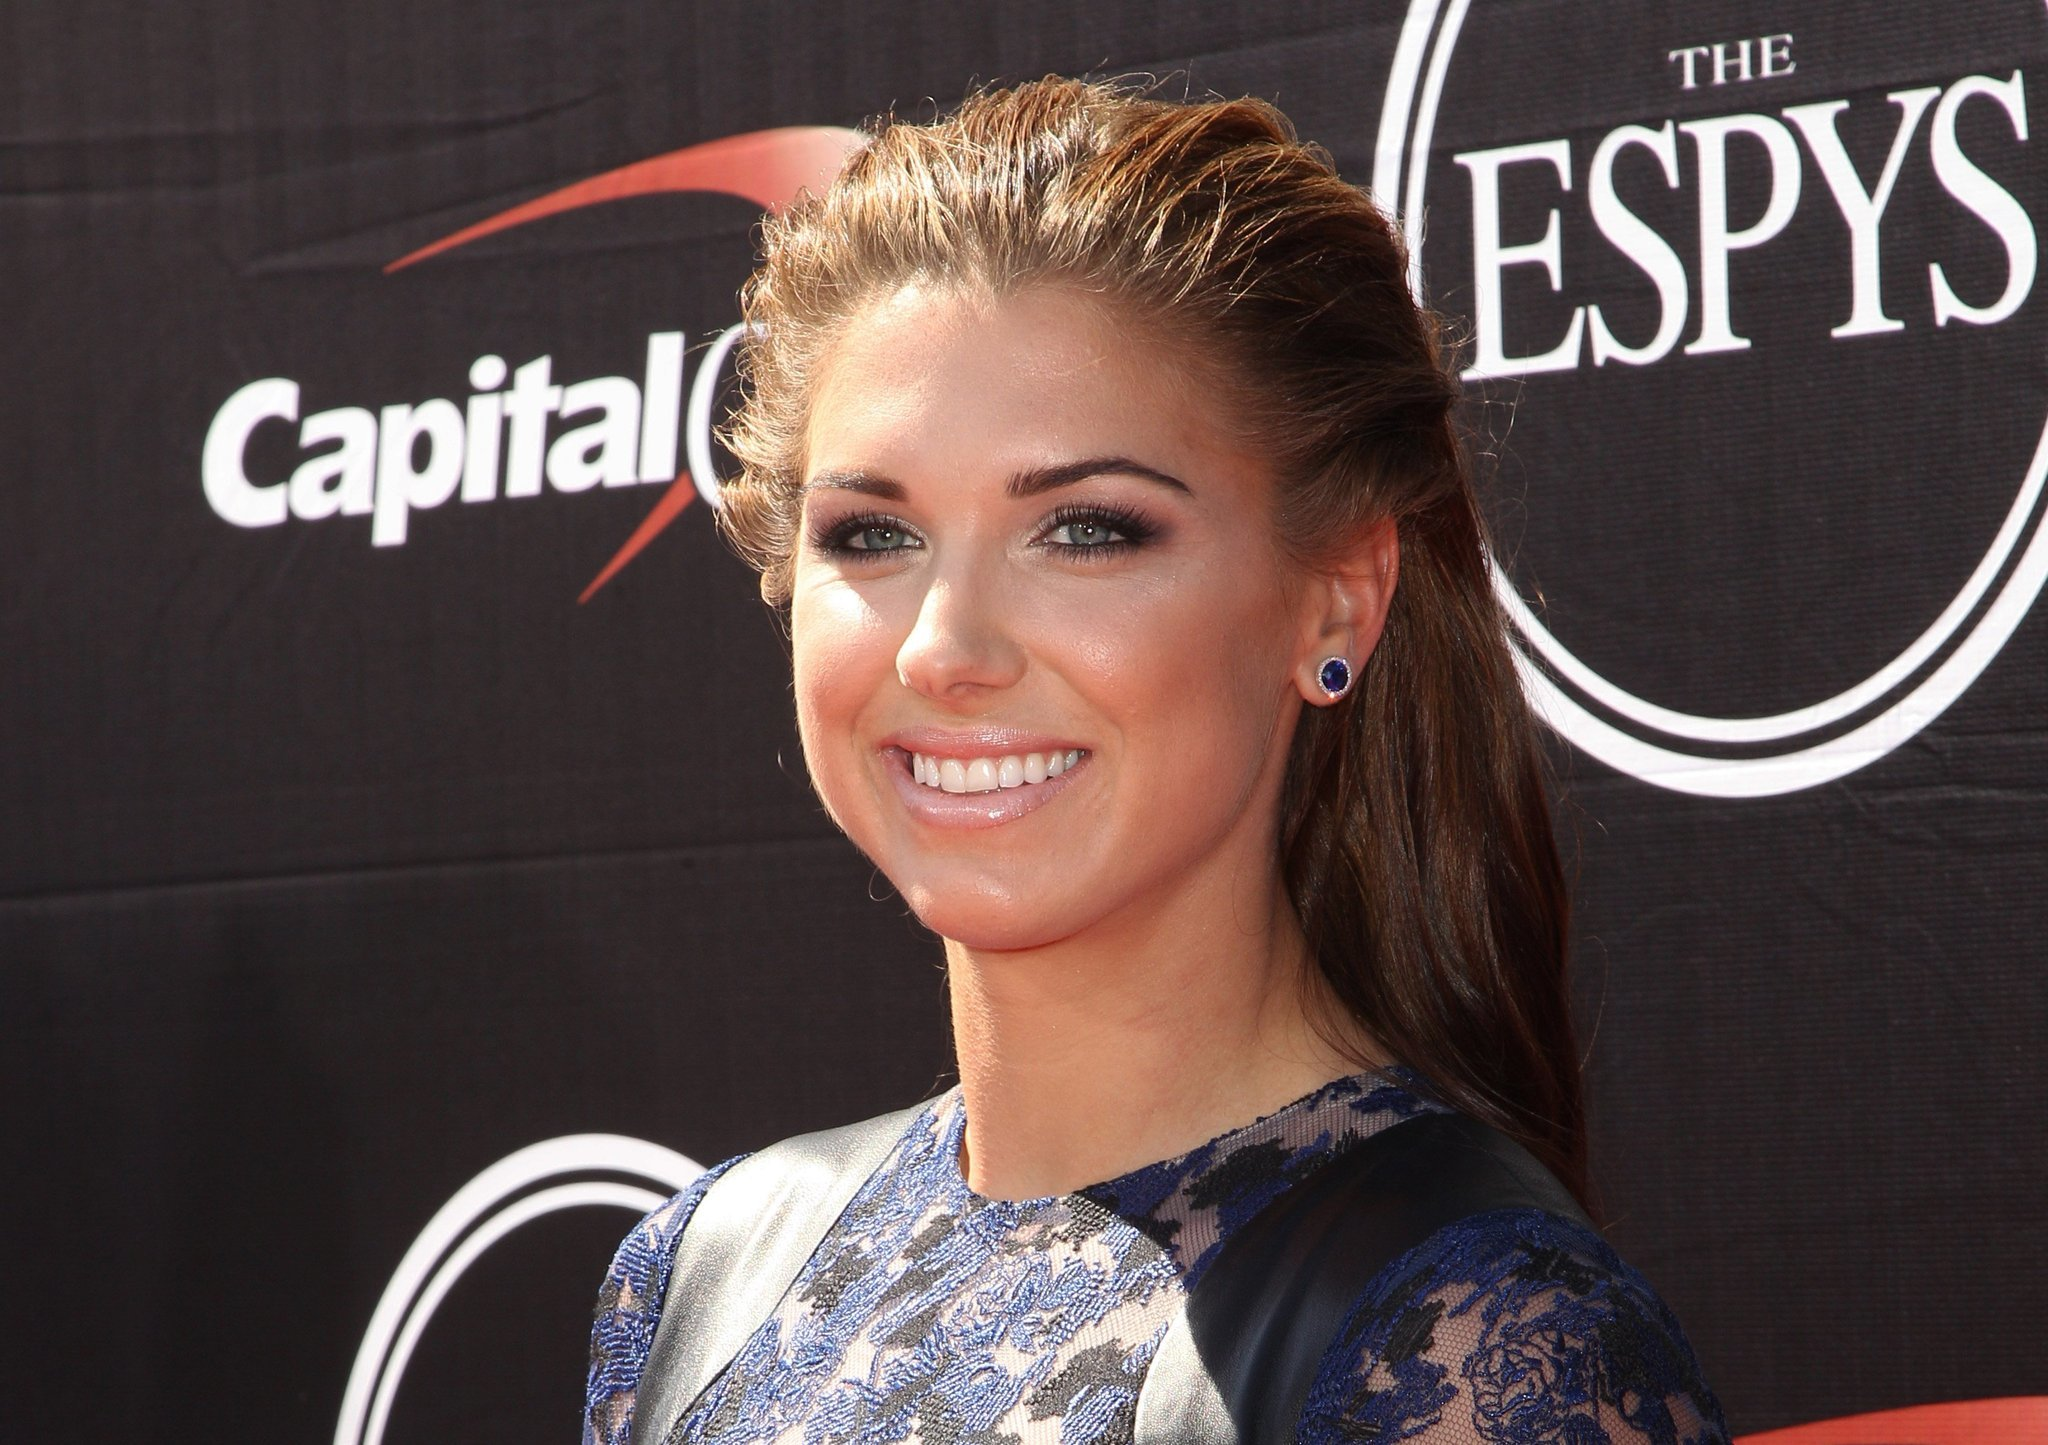 Alex Morgan joins Lionel Messi on cover of FIFA 16 - Chicago Tribune